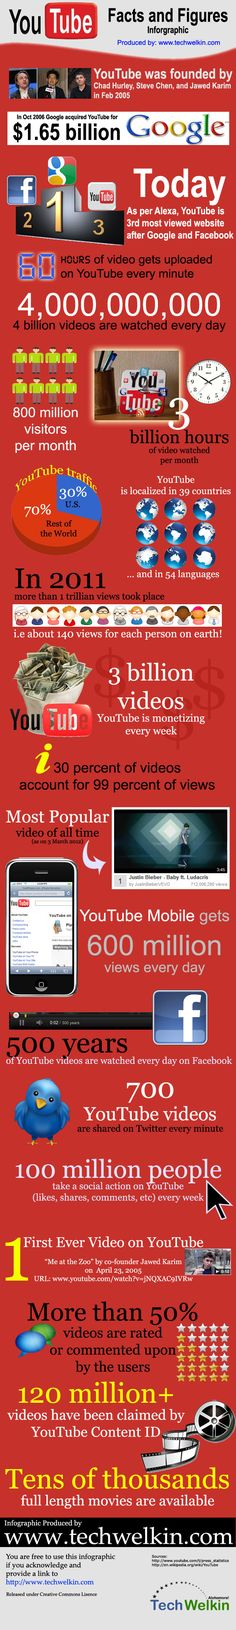 YouTube Stats by 2015 90% of Google search will be Video content!